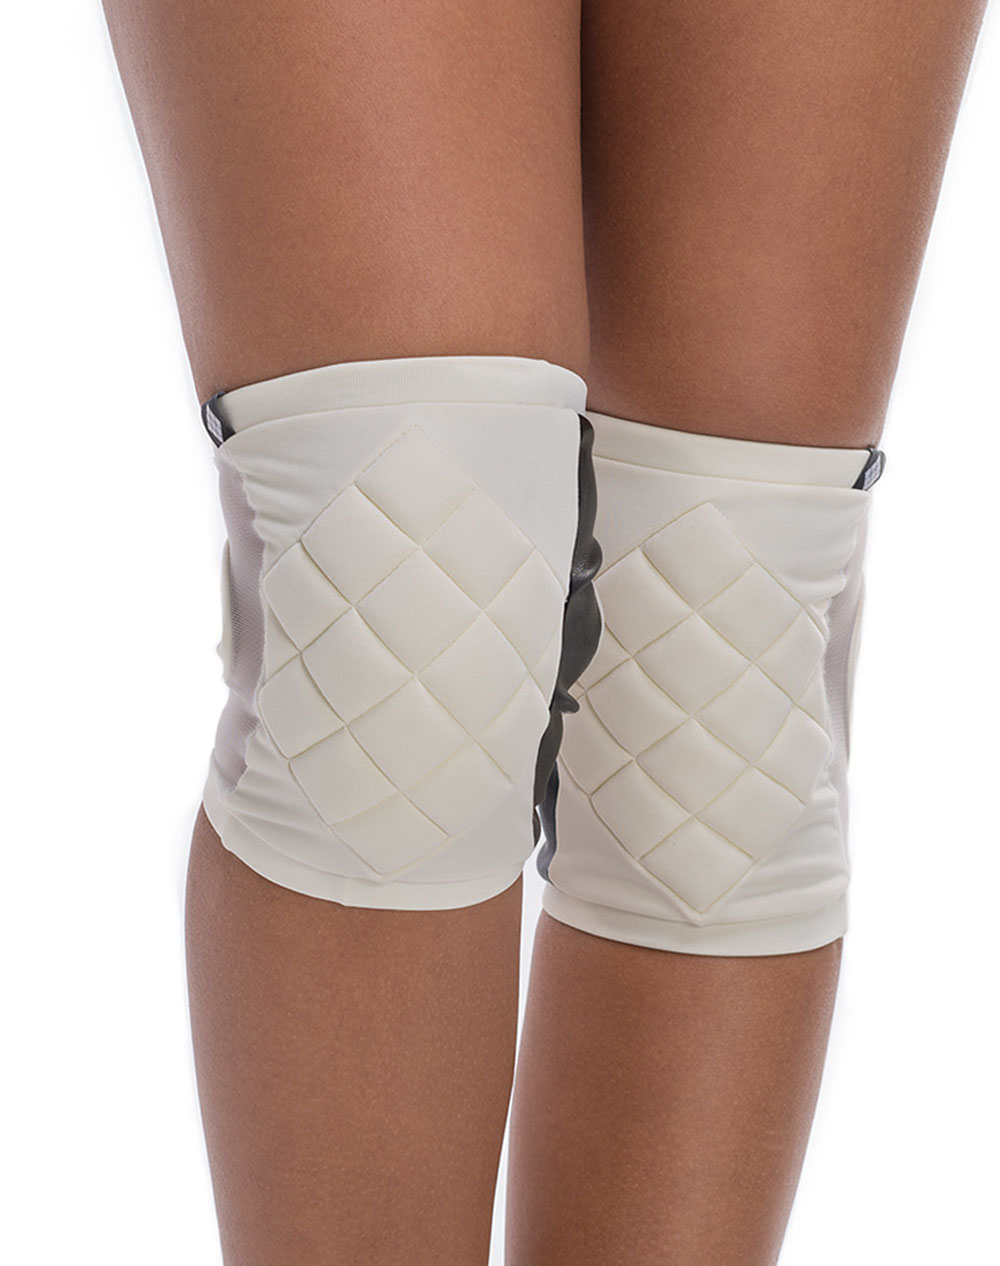 Knee Pads - Ivory white